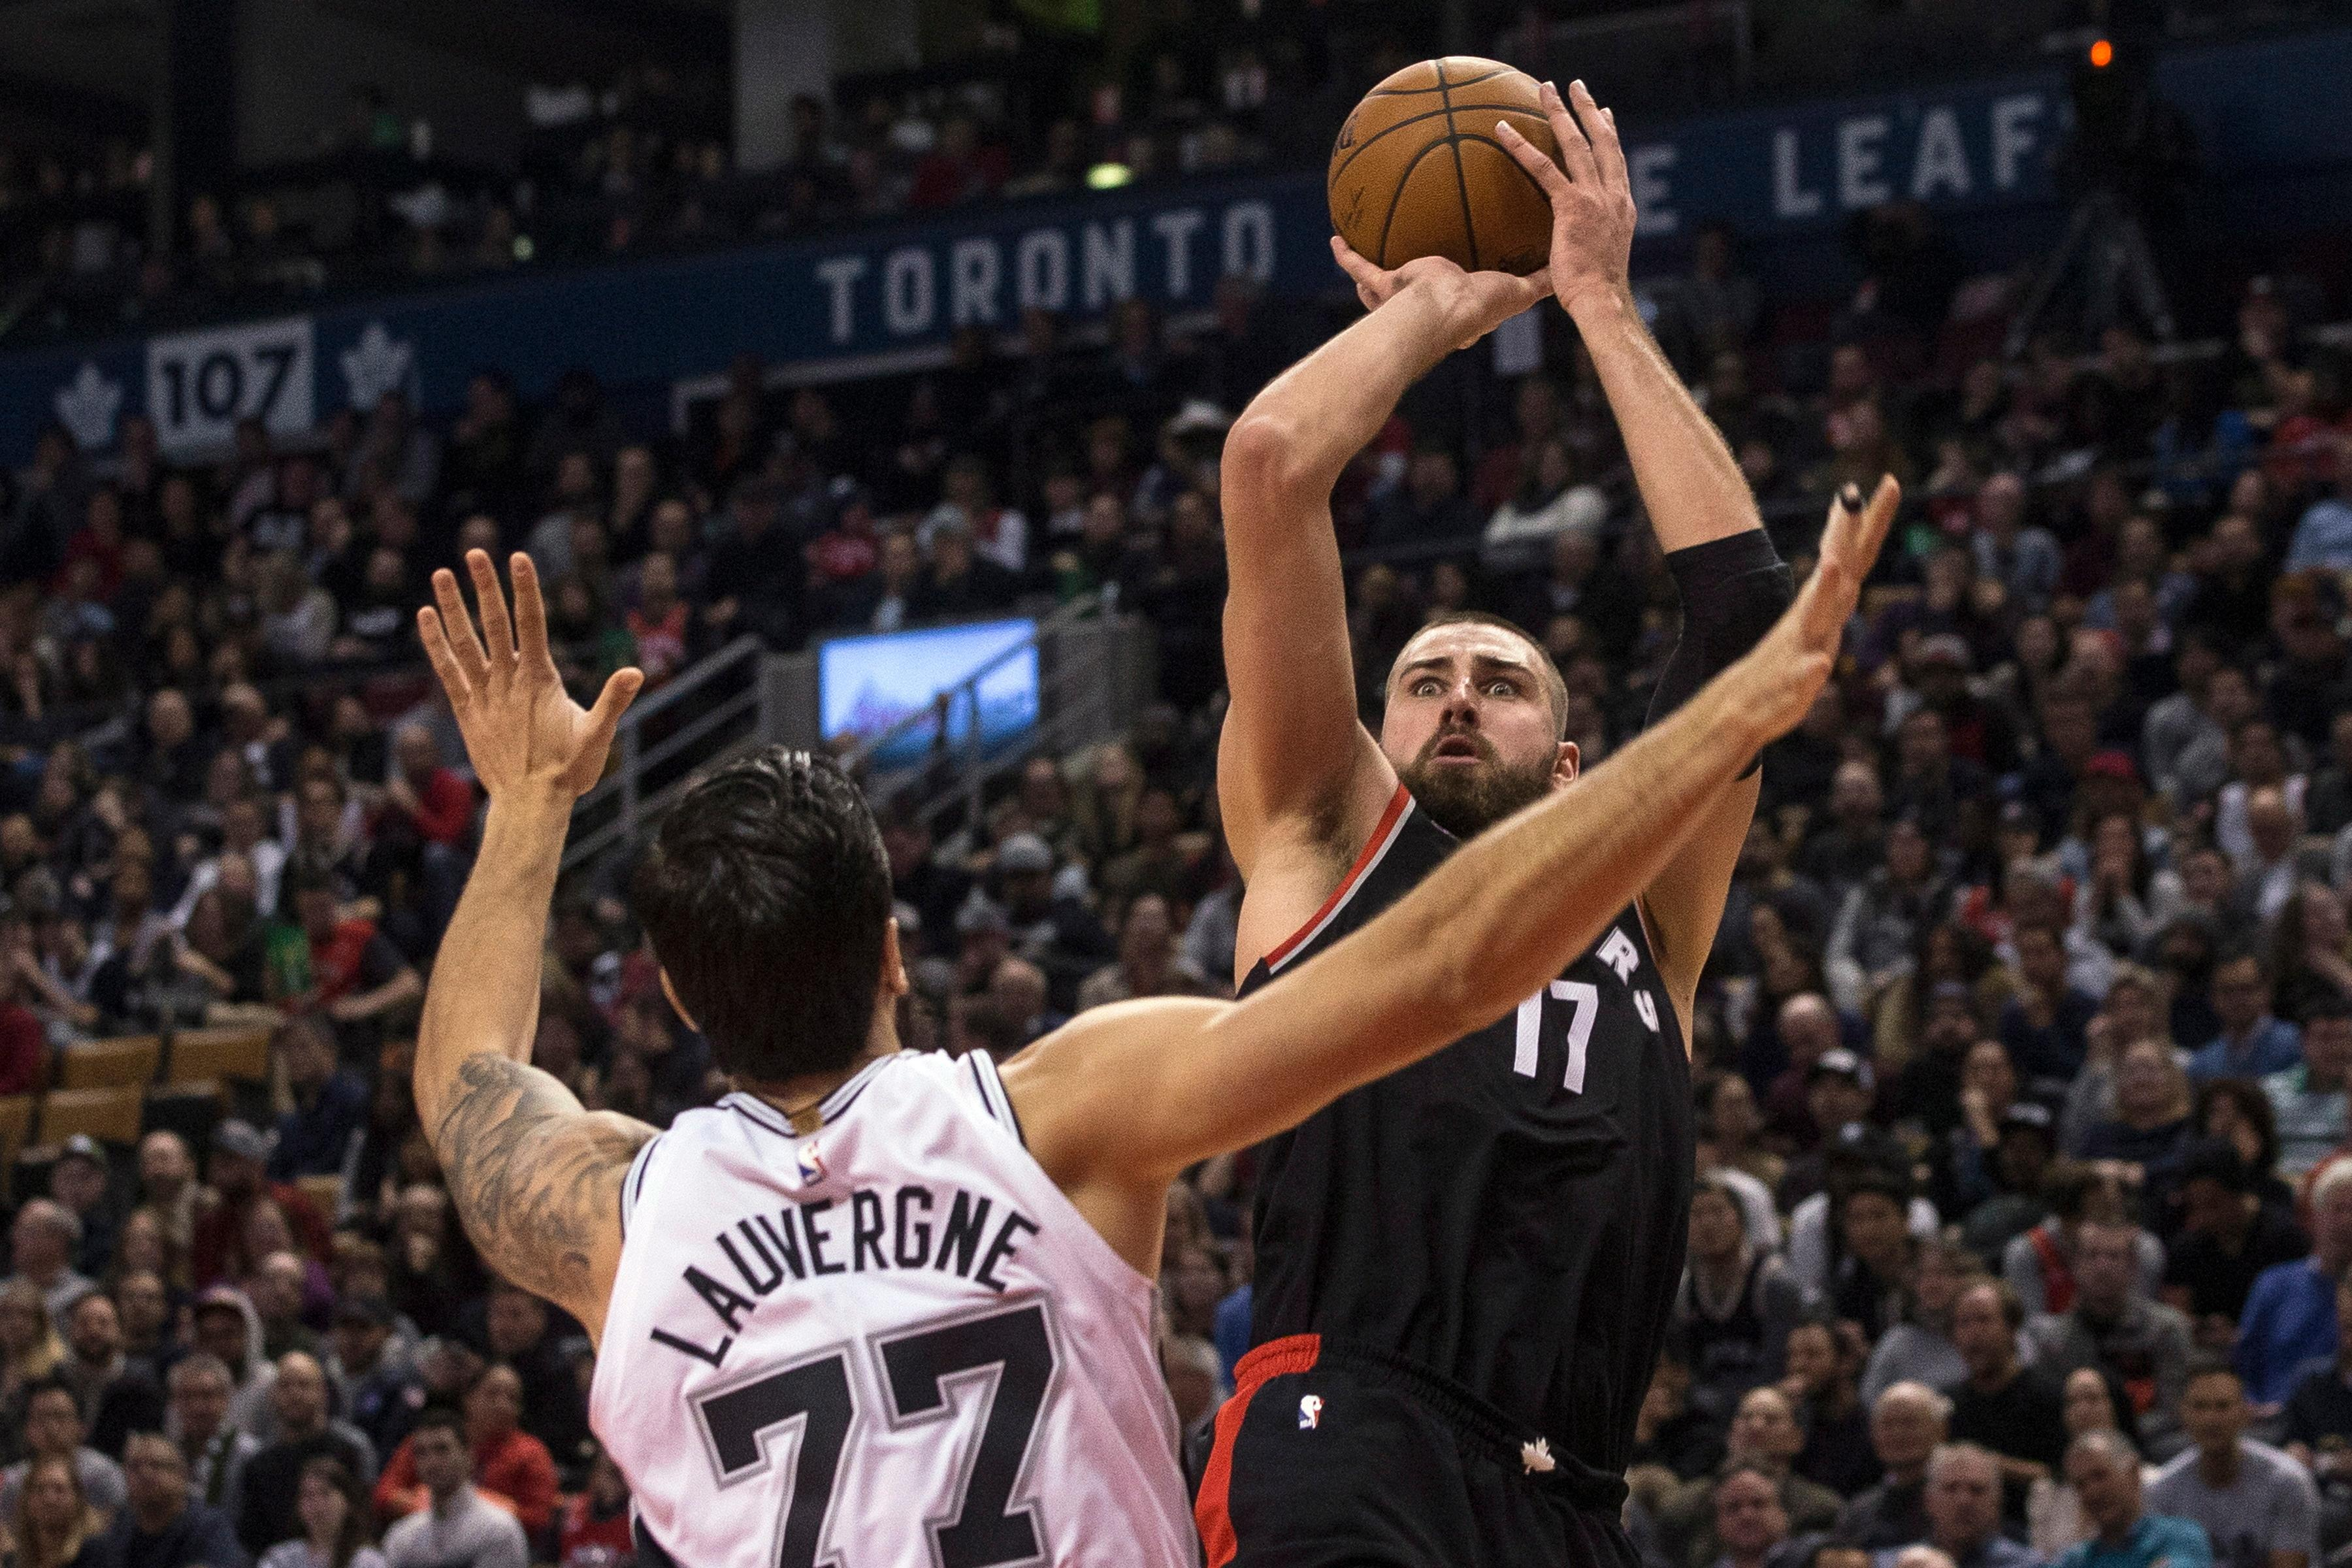 Toronto Raptors center Jonas Valanciunas (17) shoots over San Antonio Spurs center Joffrey Lauvergne (77) during the second half of an NBA basketball game Friday, Jan. 19, 2018, in Toronto. (Chris Young/The Canadian Press via AP)